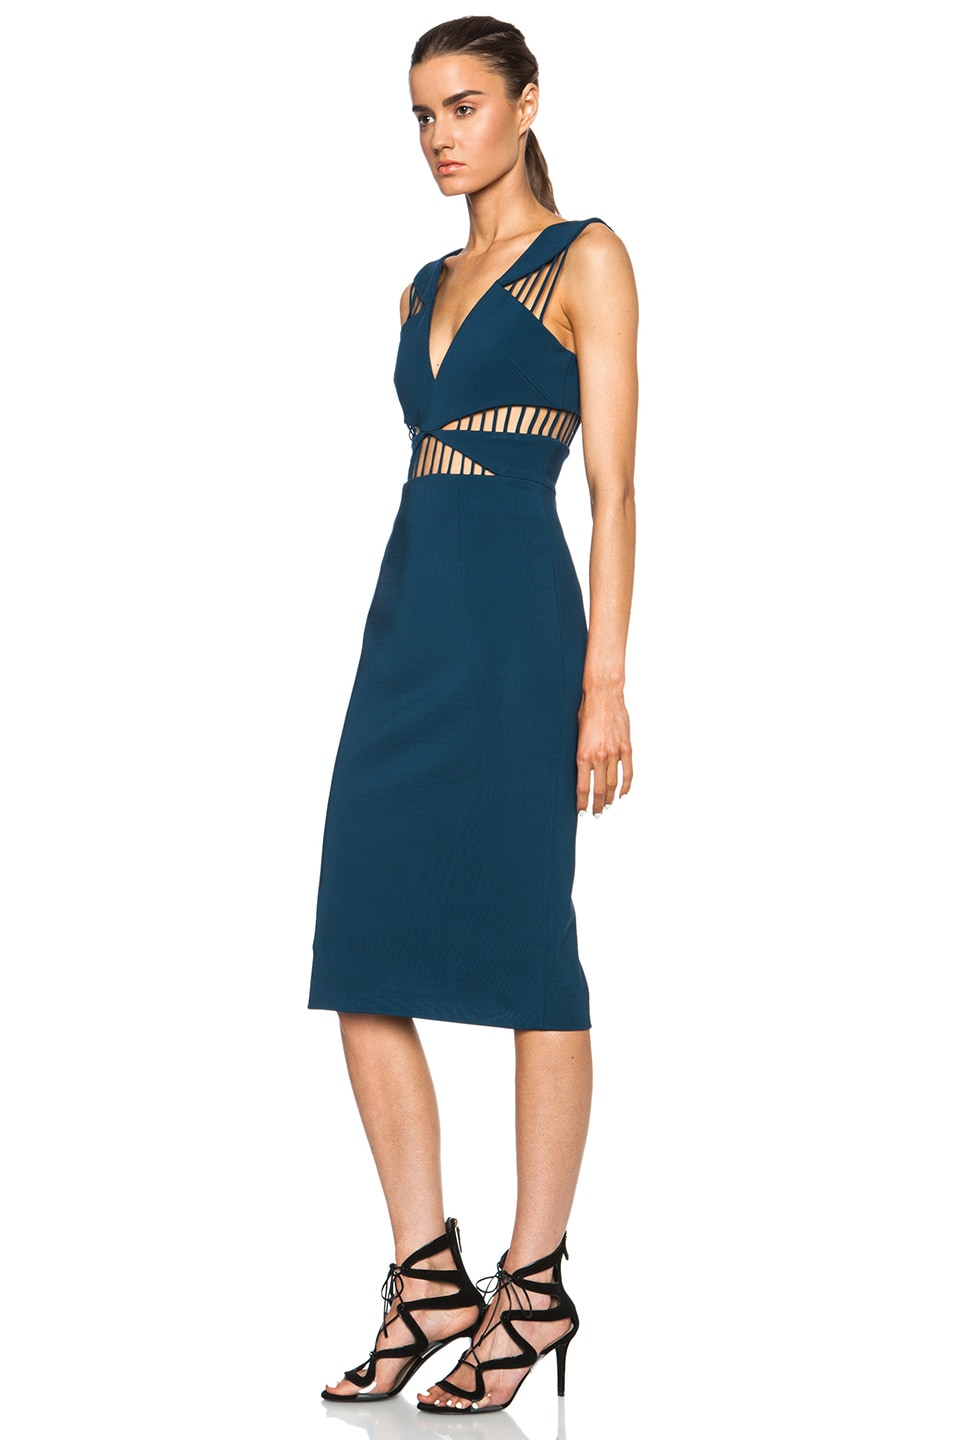 Image 2 of Cushnie et Ochs FORWARD EXCLUSIVE Power Viscose-Blend Dress in Blue Nile